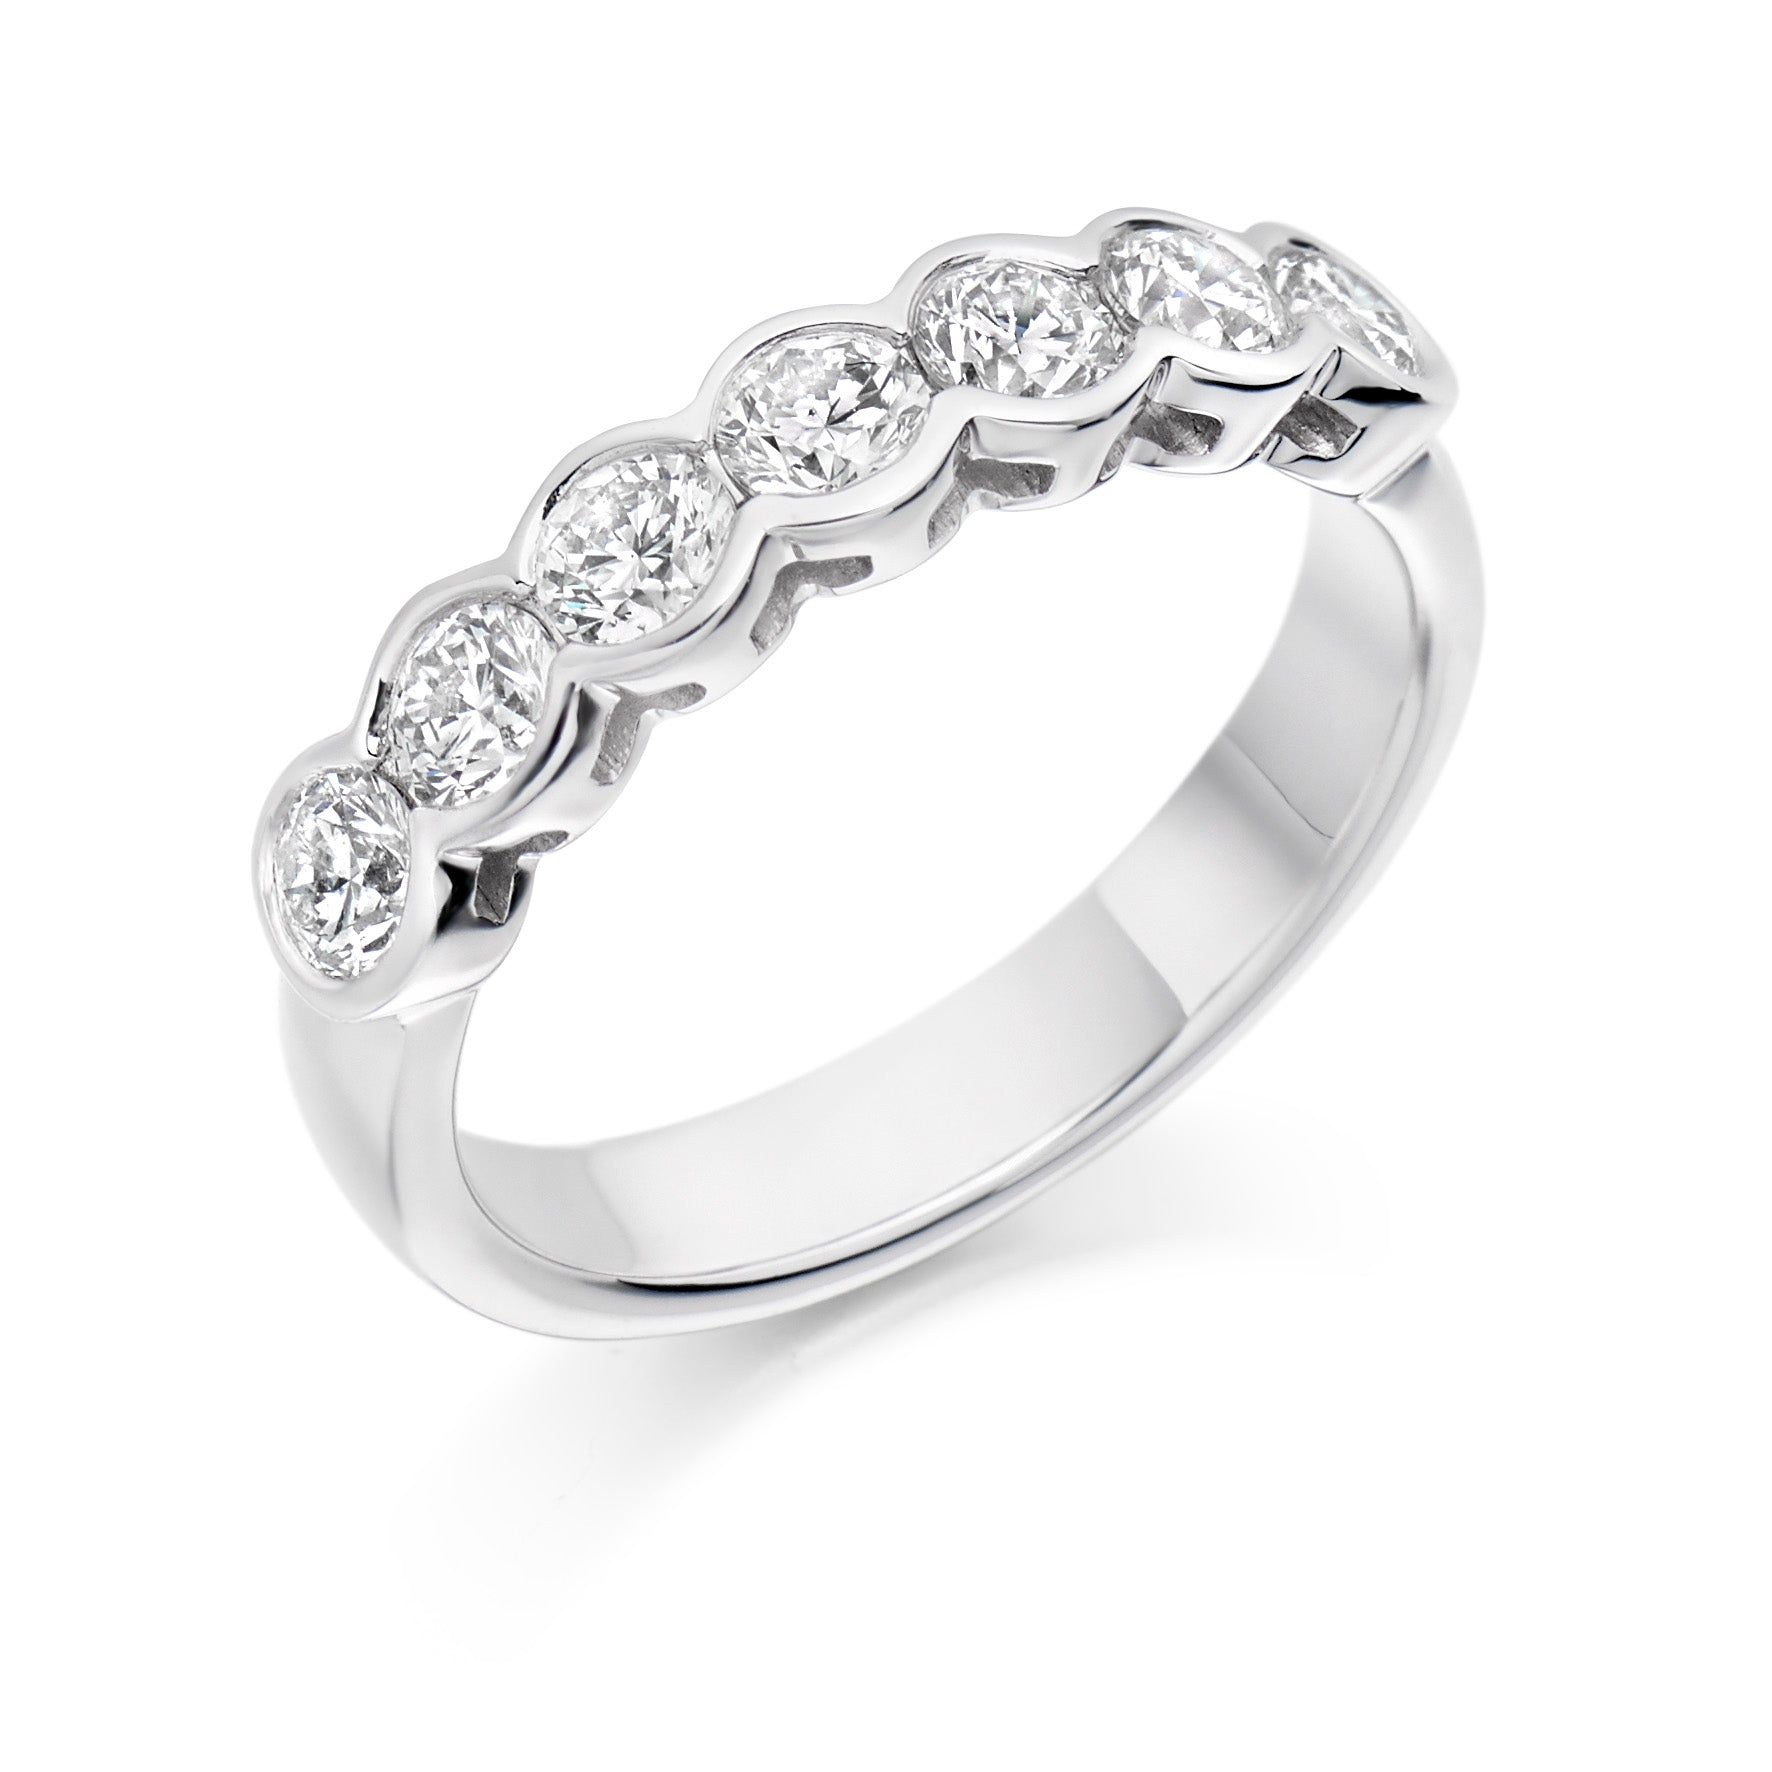 1ct Round Brilliant Cut Diamond Rubover Set Eternity Ring - (Home Try-On)